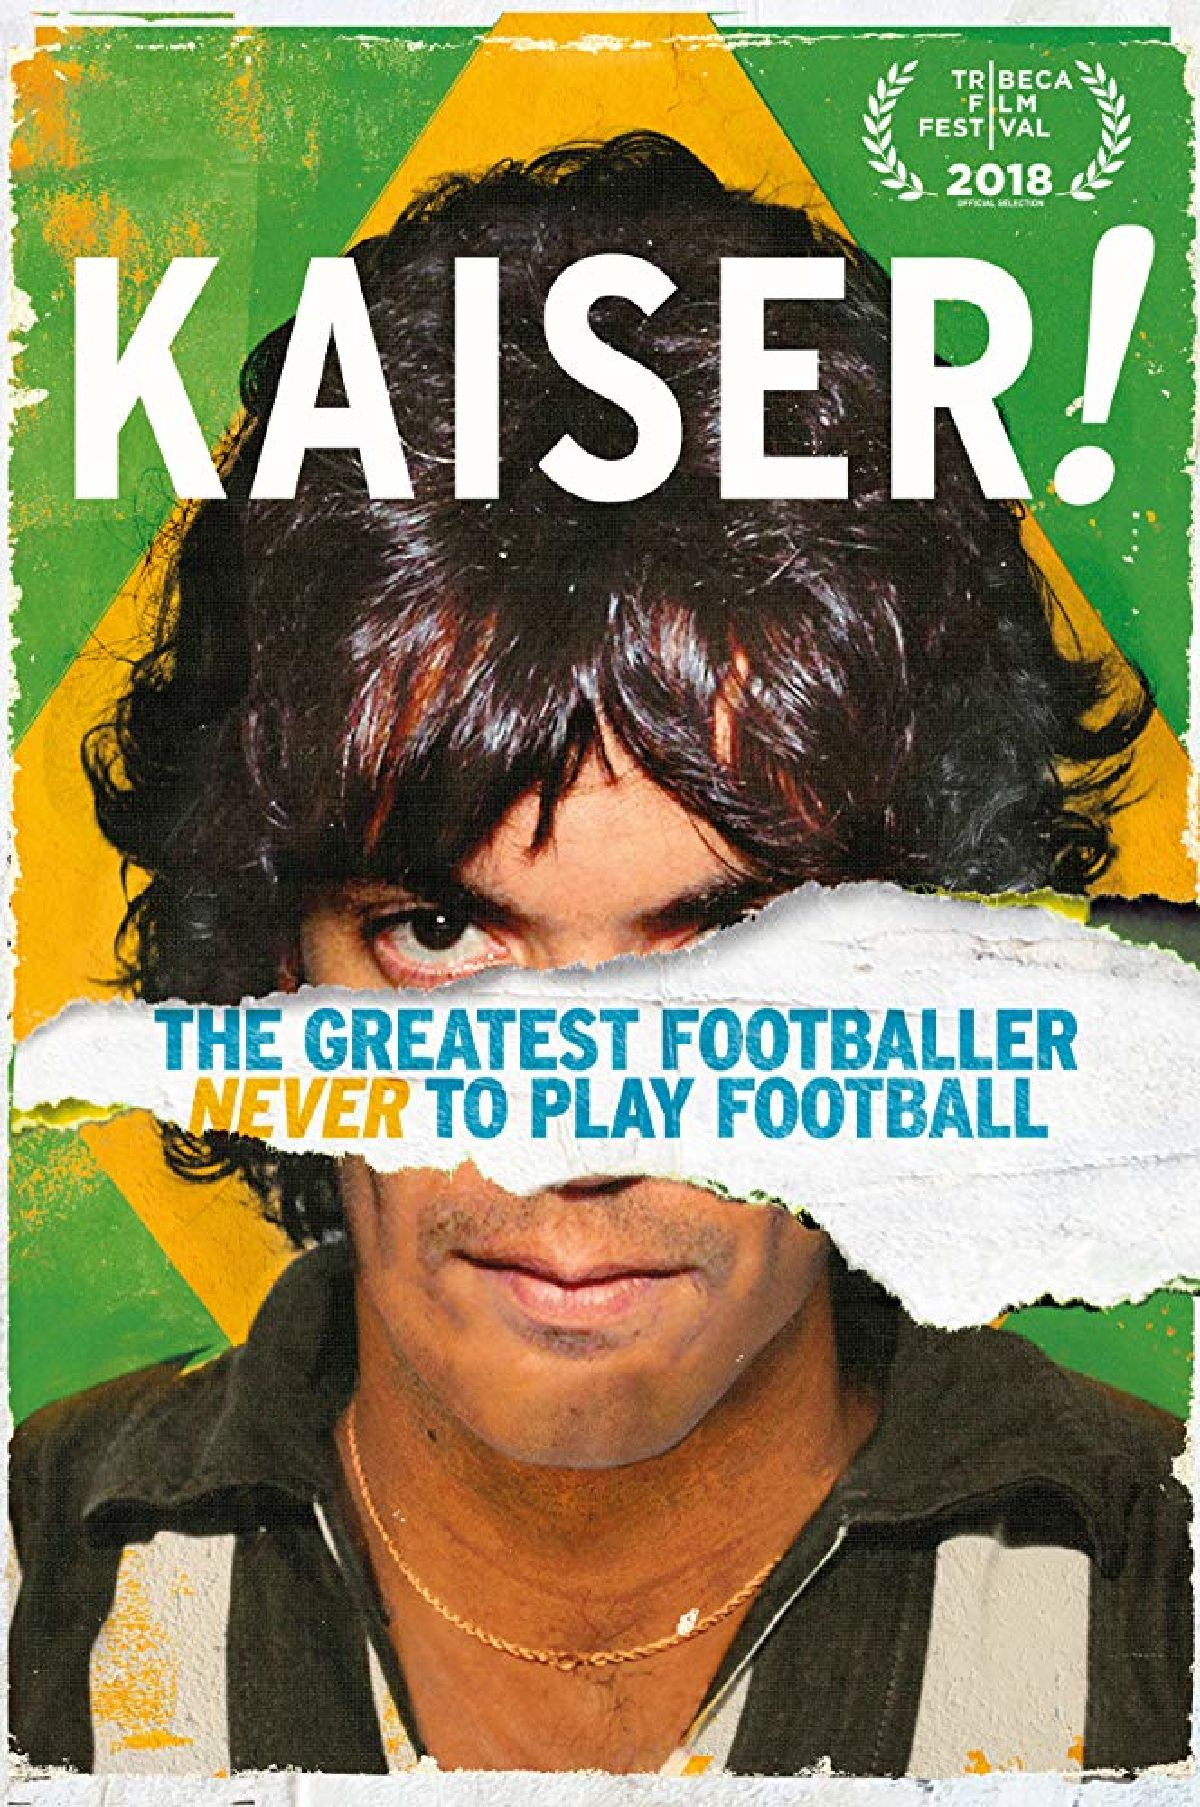 'Kaiser: The Greatest Footballer Never To Play Football' movie poster